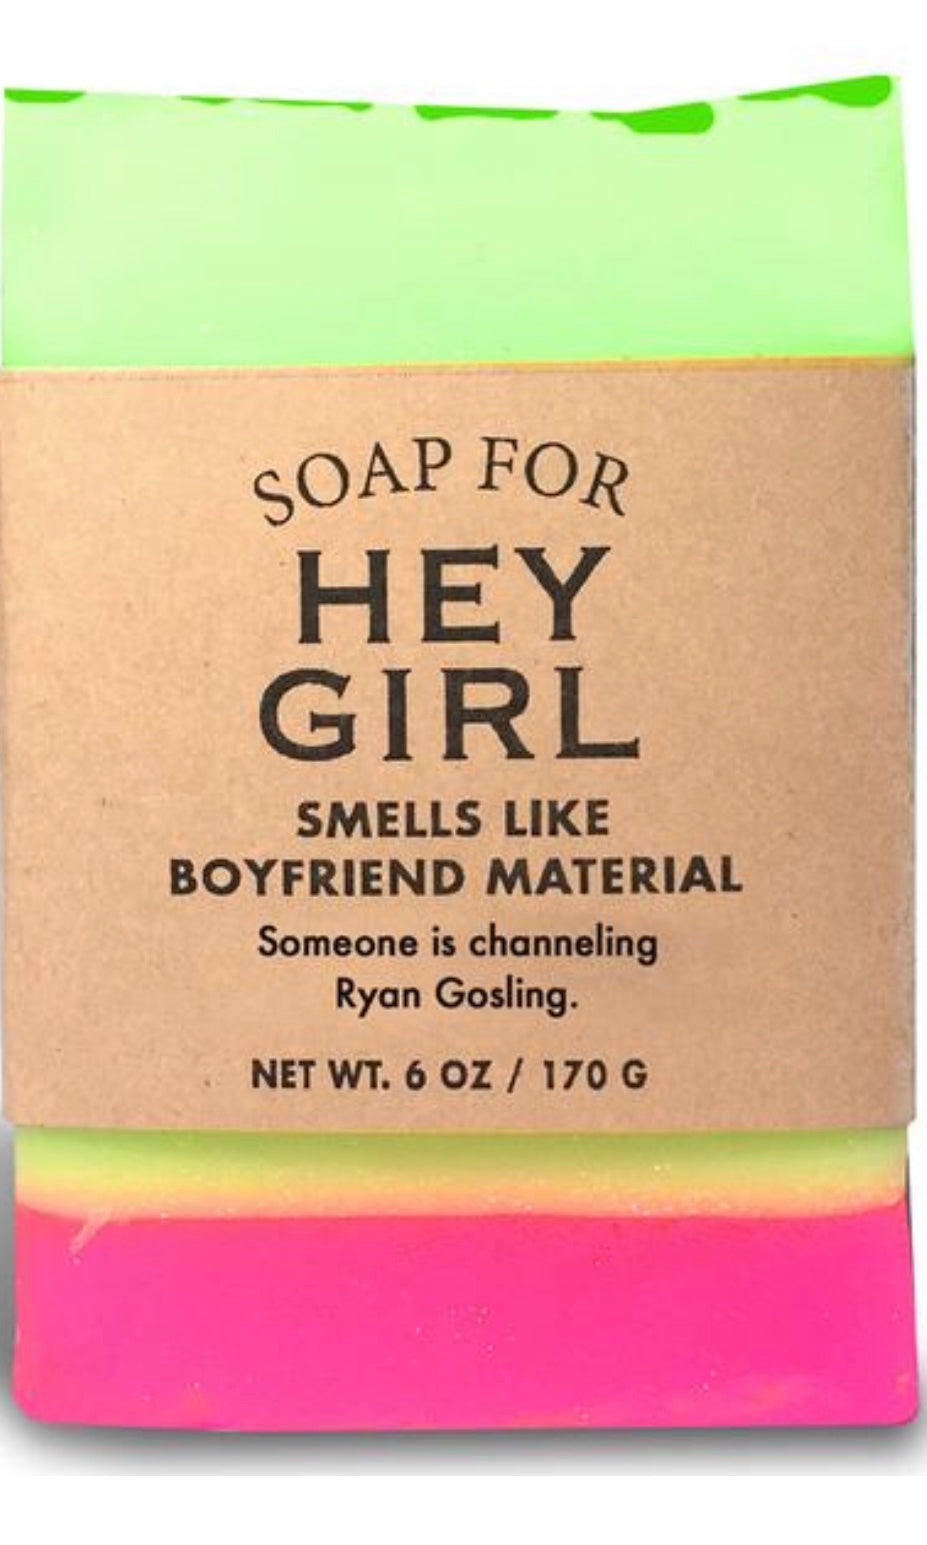 Whisky River Soap for Hey Girl